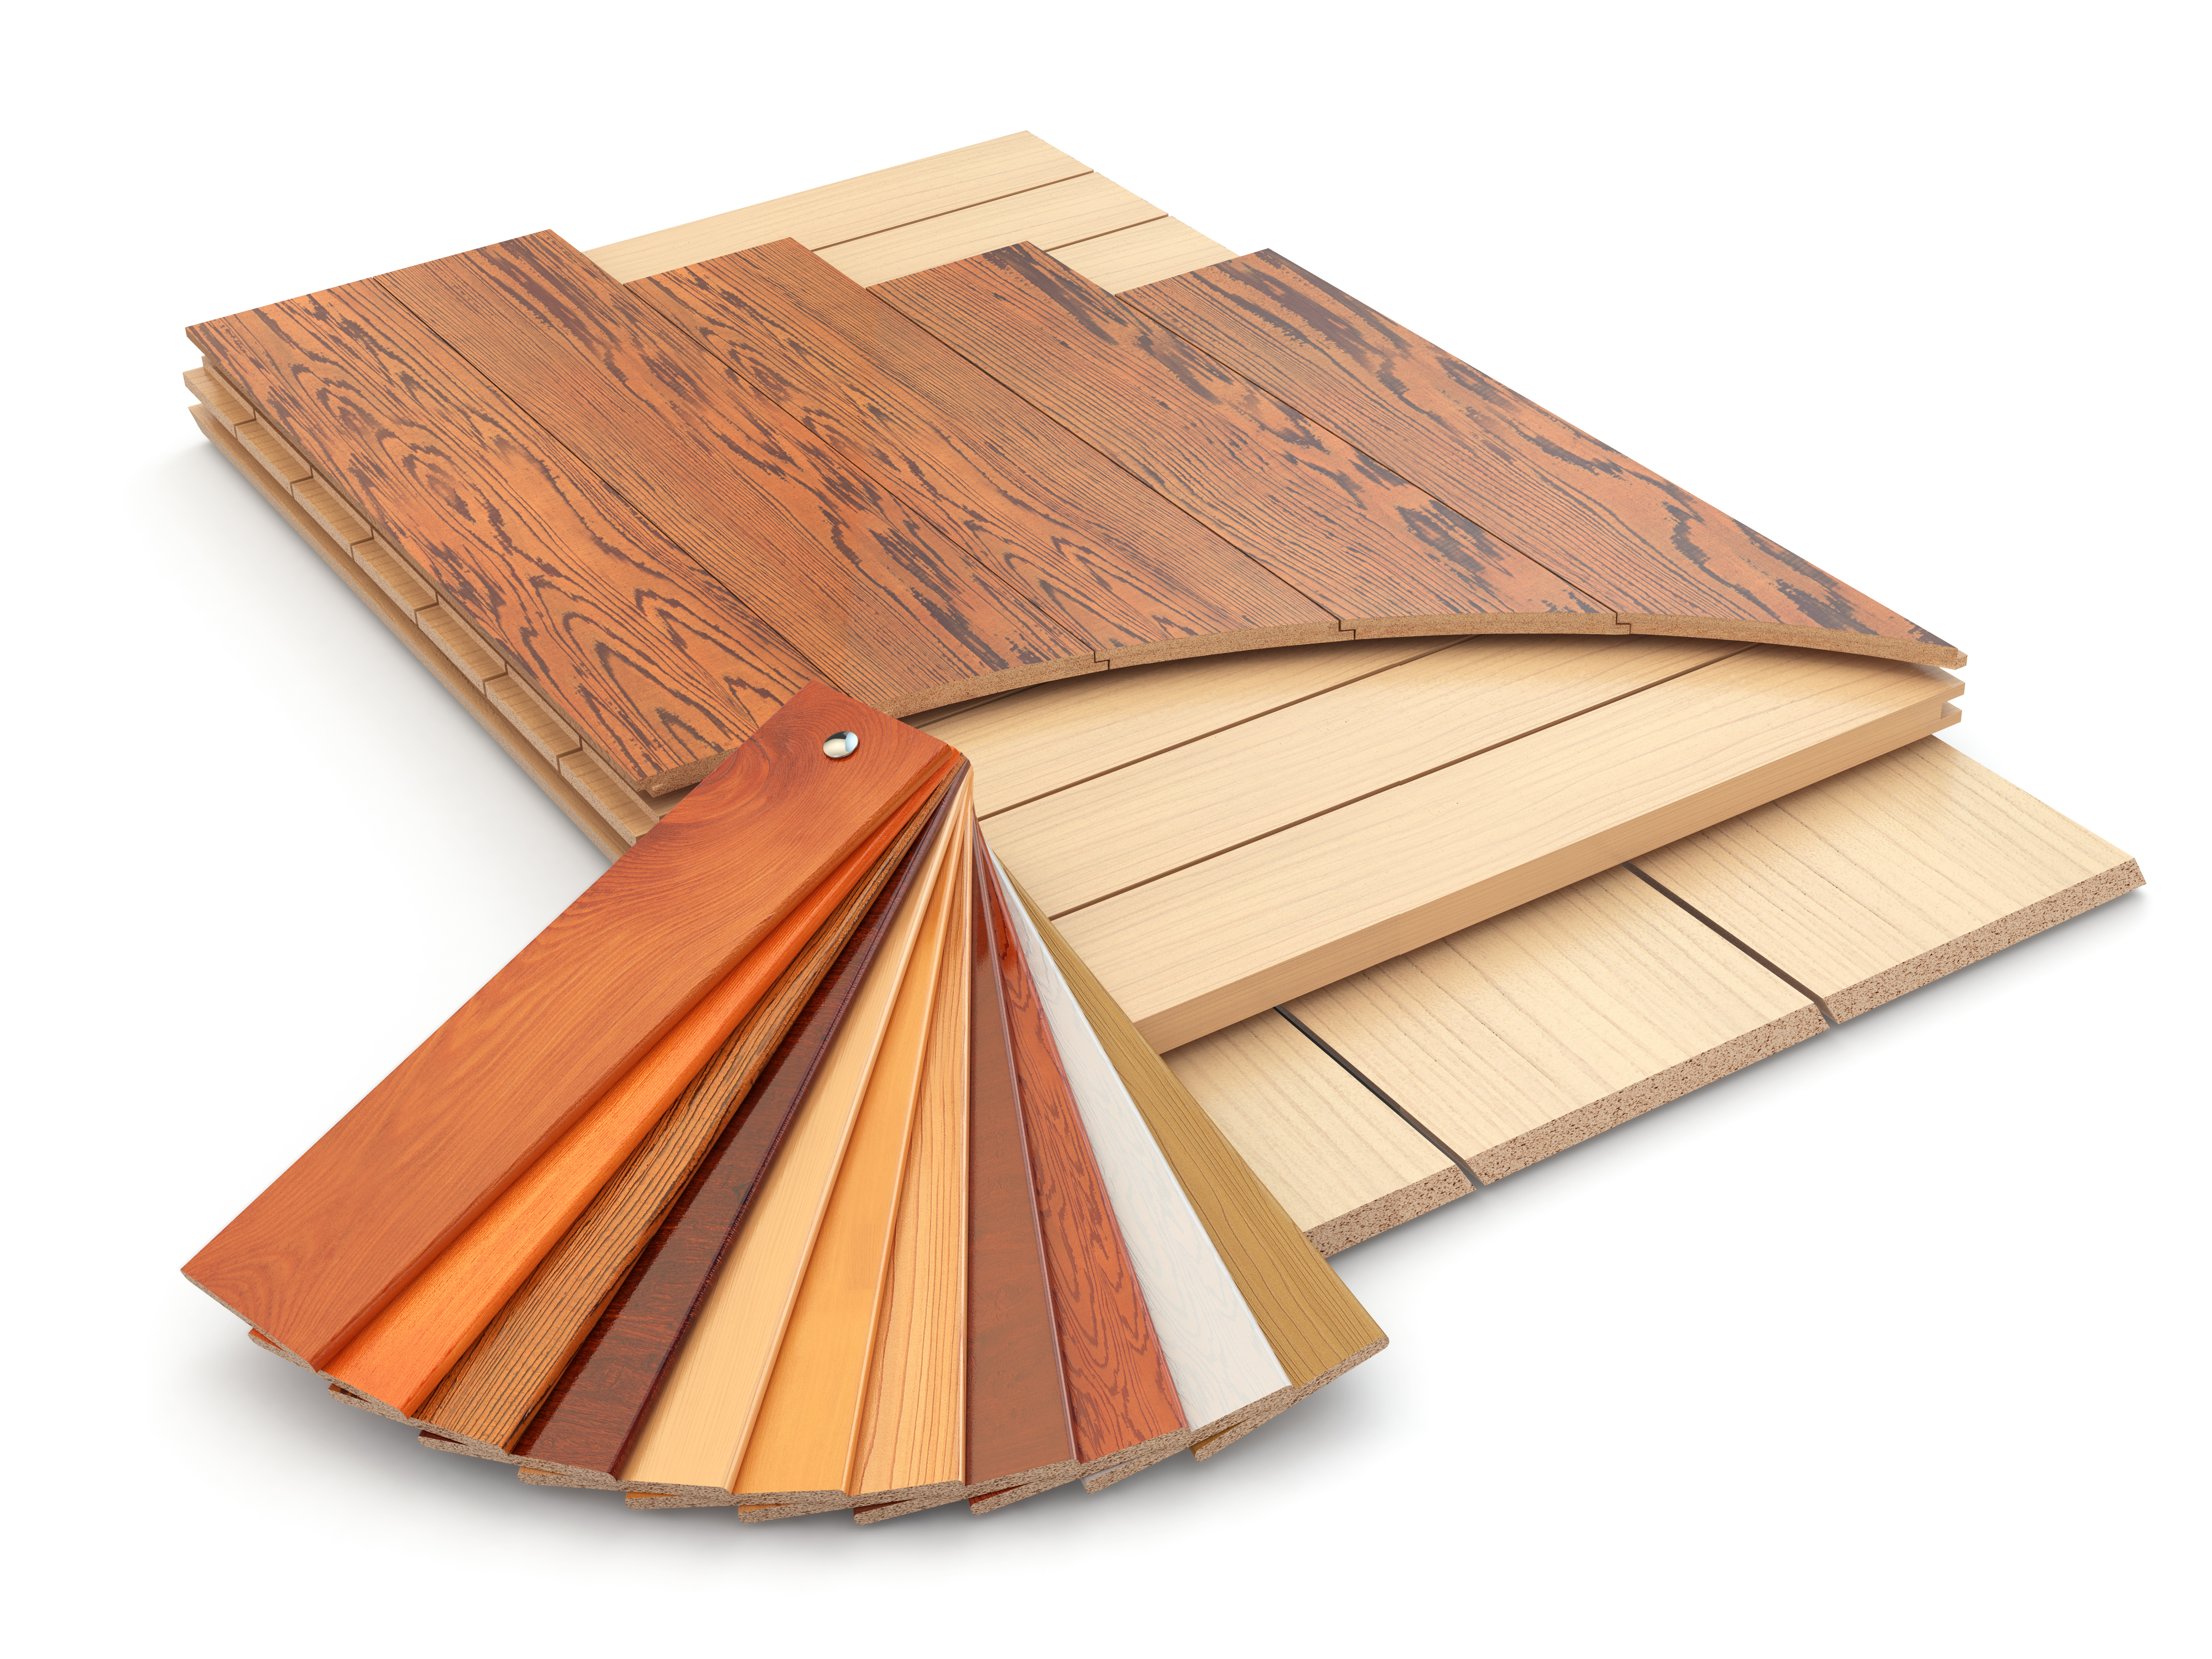 Compare laminate floors useful information for comparing for Compare laminate flooring